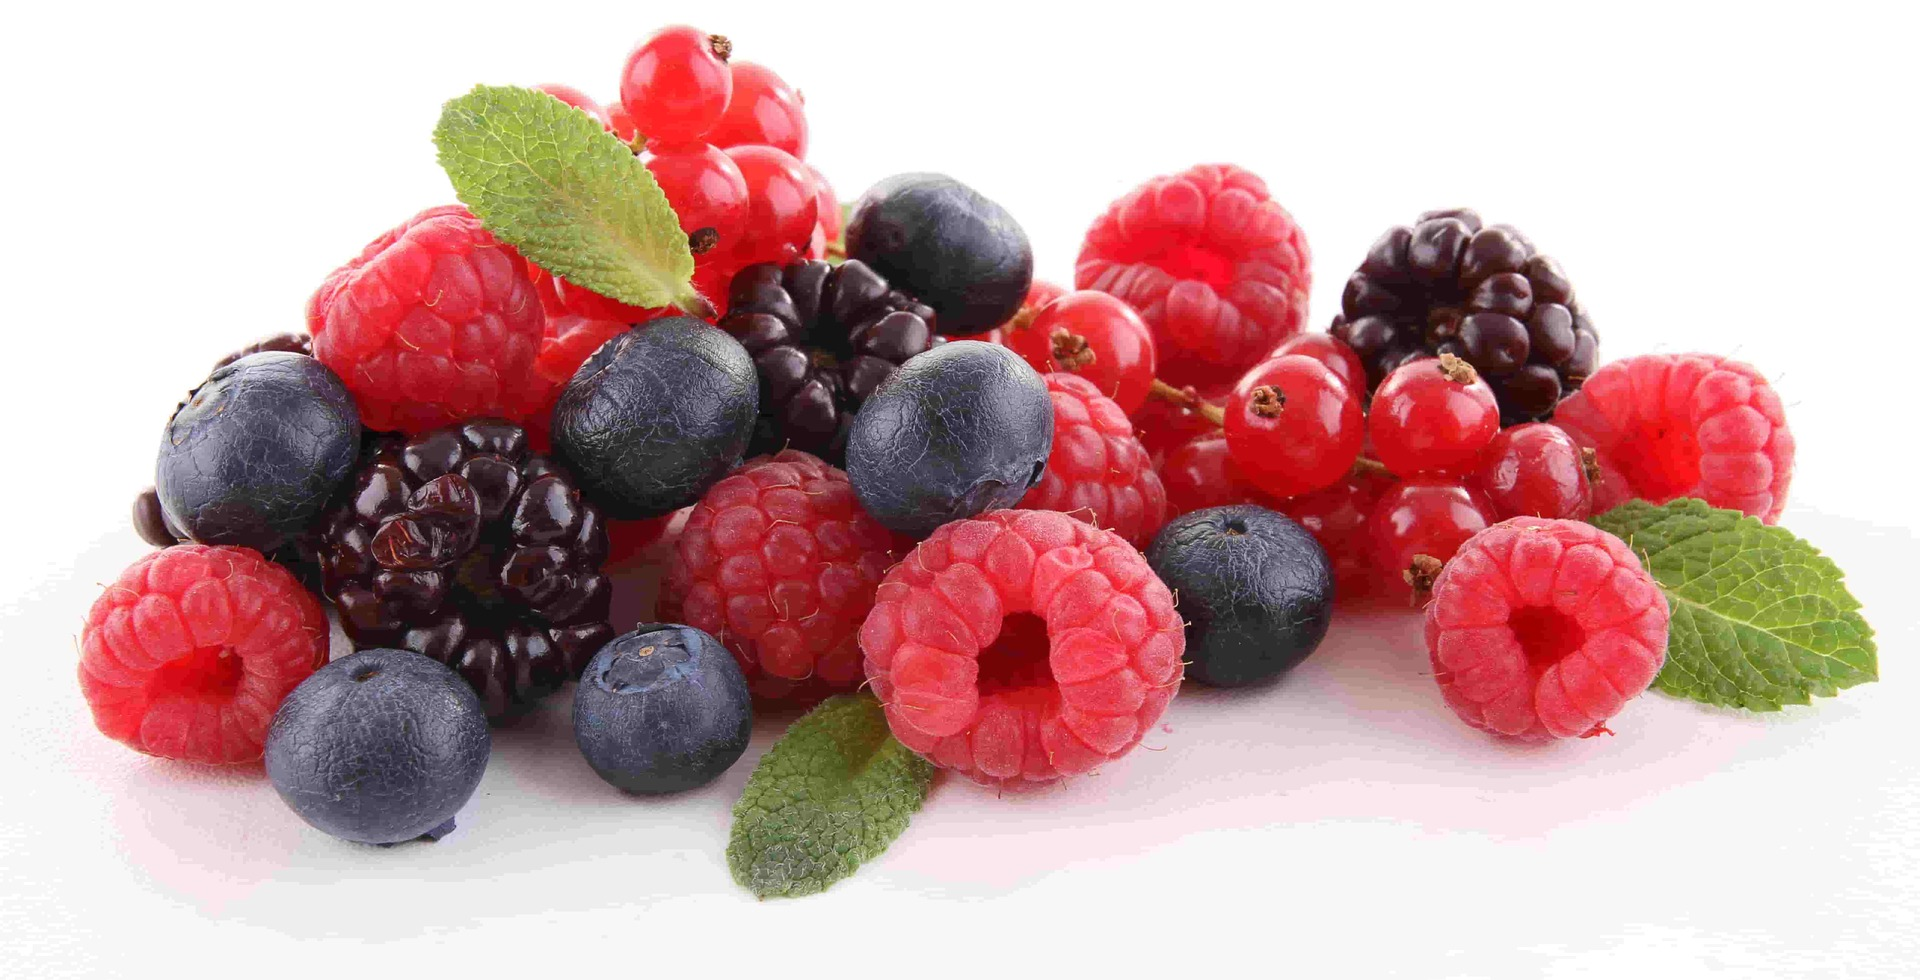 Have a Berry Sweet Day